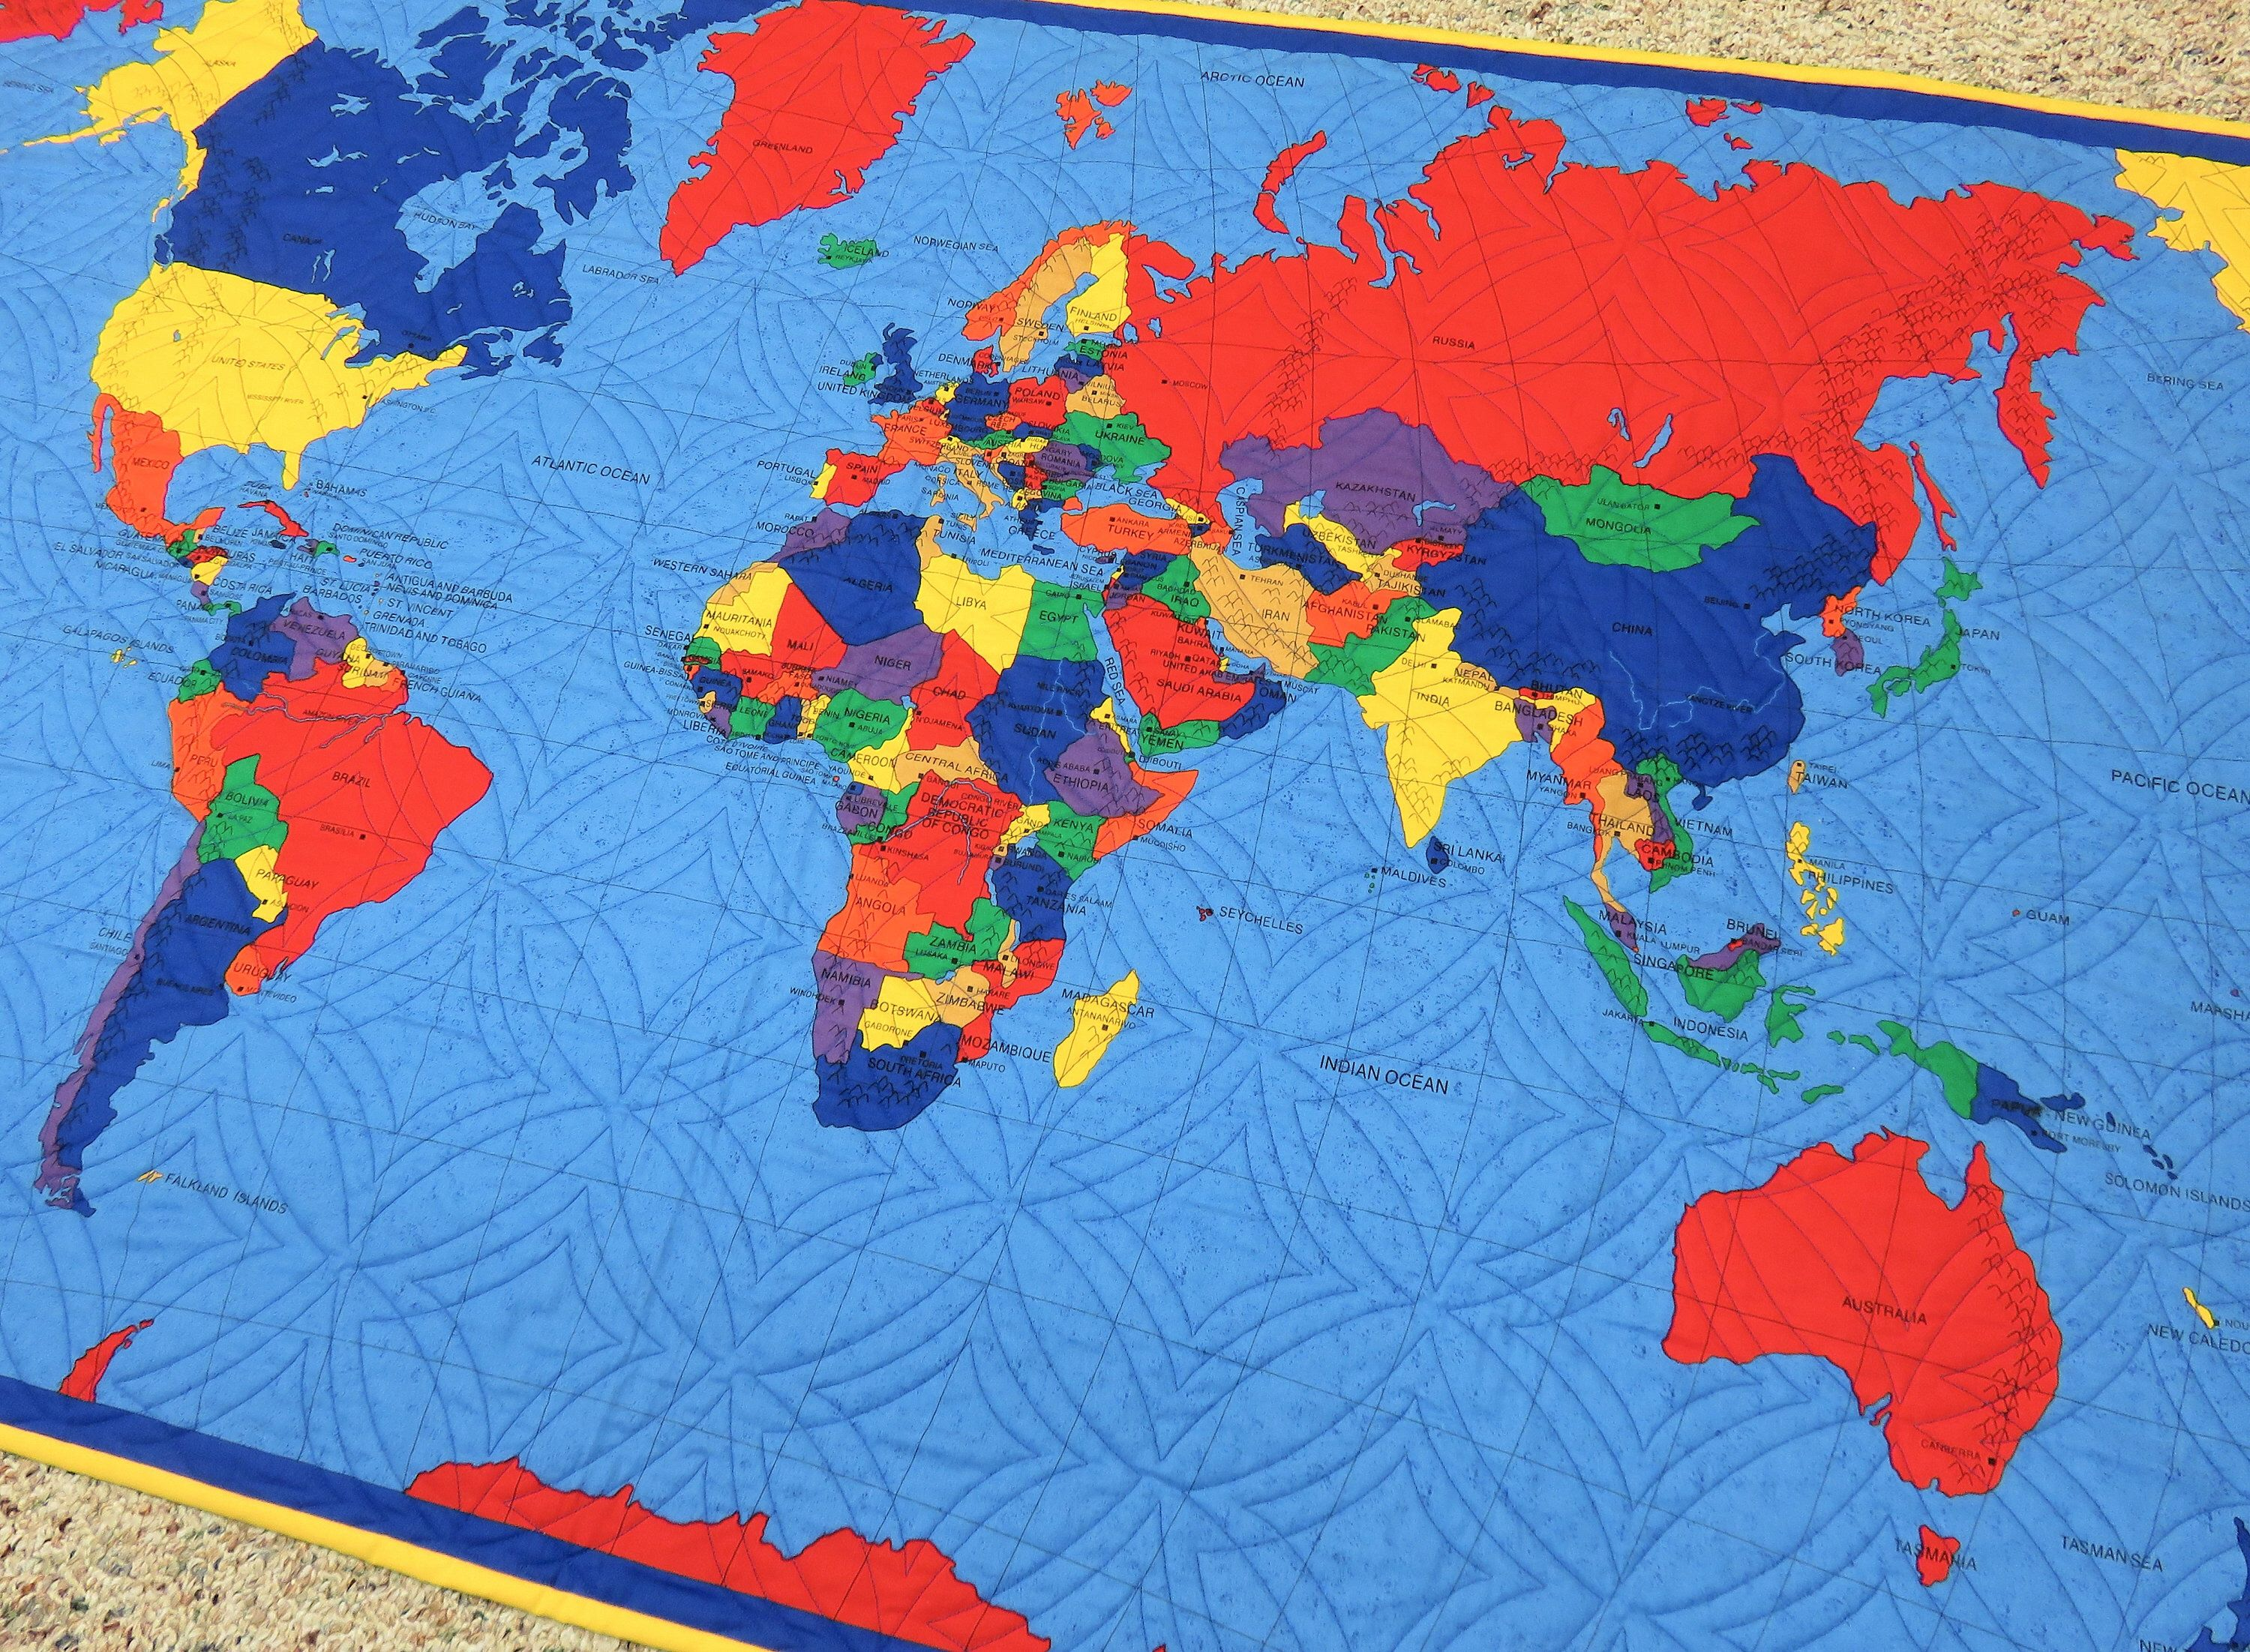 World Map For Sale Handmade Wall Hanging for Sale, World Map, Map of the World, Kids